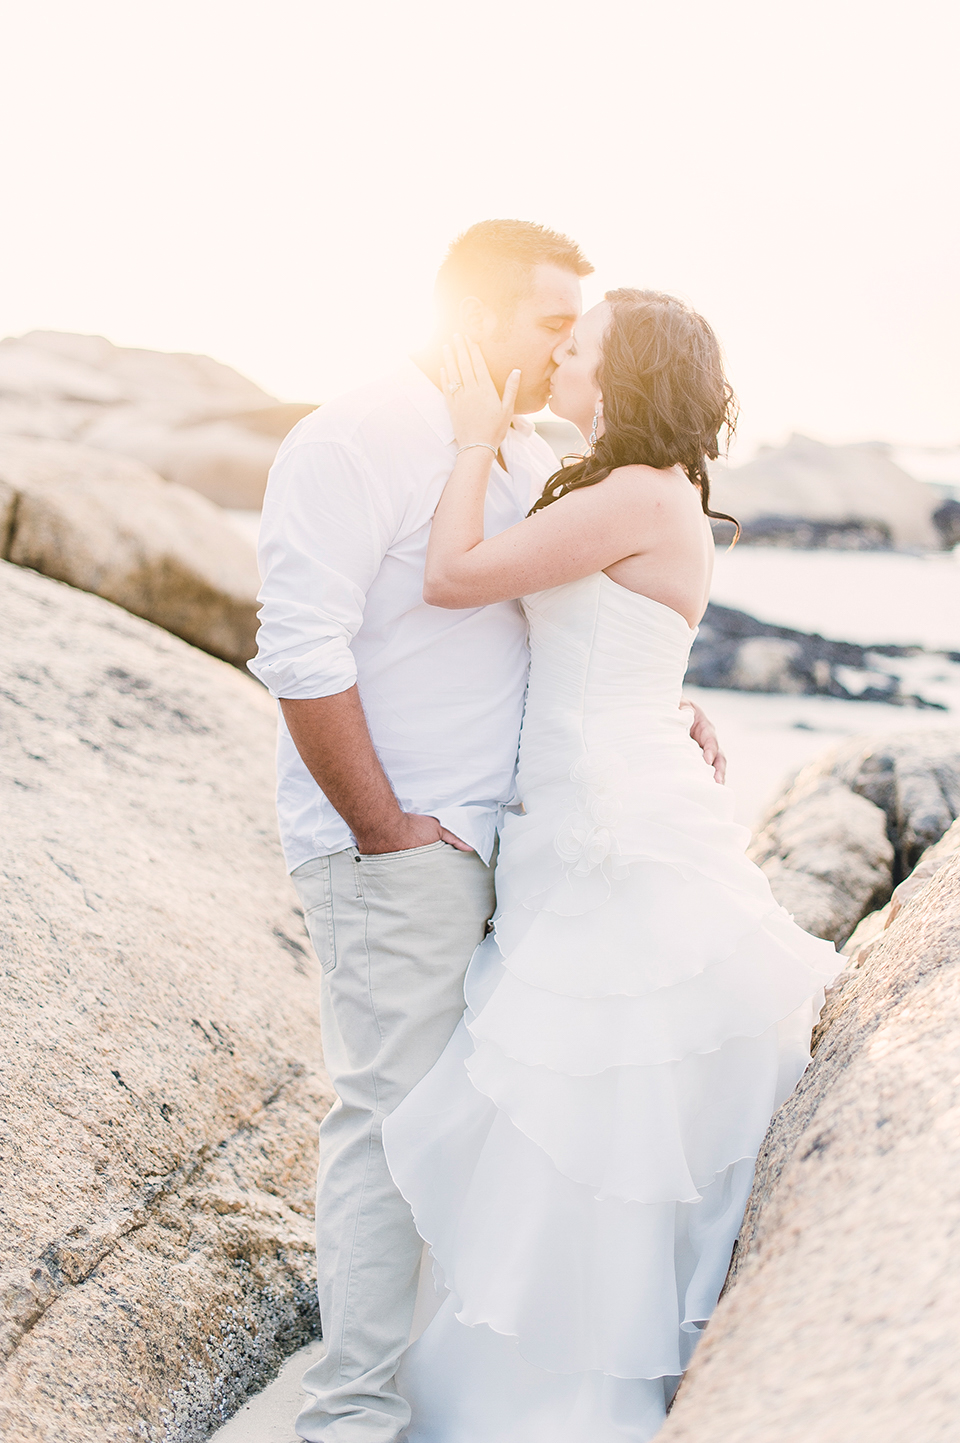 RYAN PARKER_WEDDING PHOTOGRAPHER_FINE ART_WESTERN_CAPE PATERNOSTER_M&F-2-6.jpg